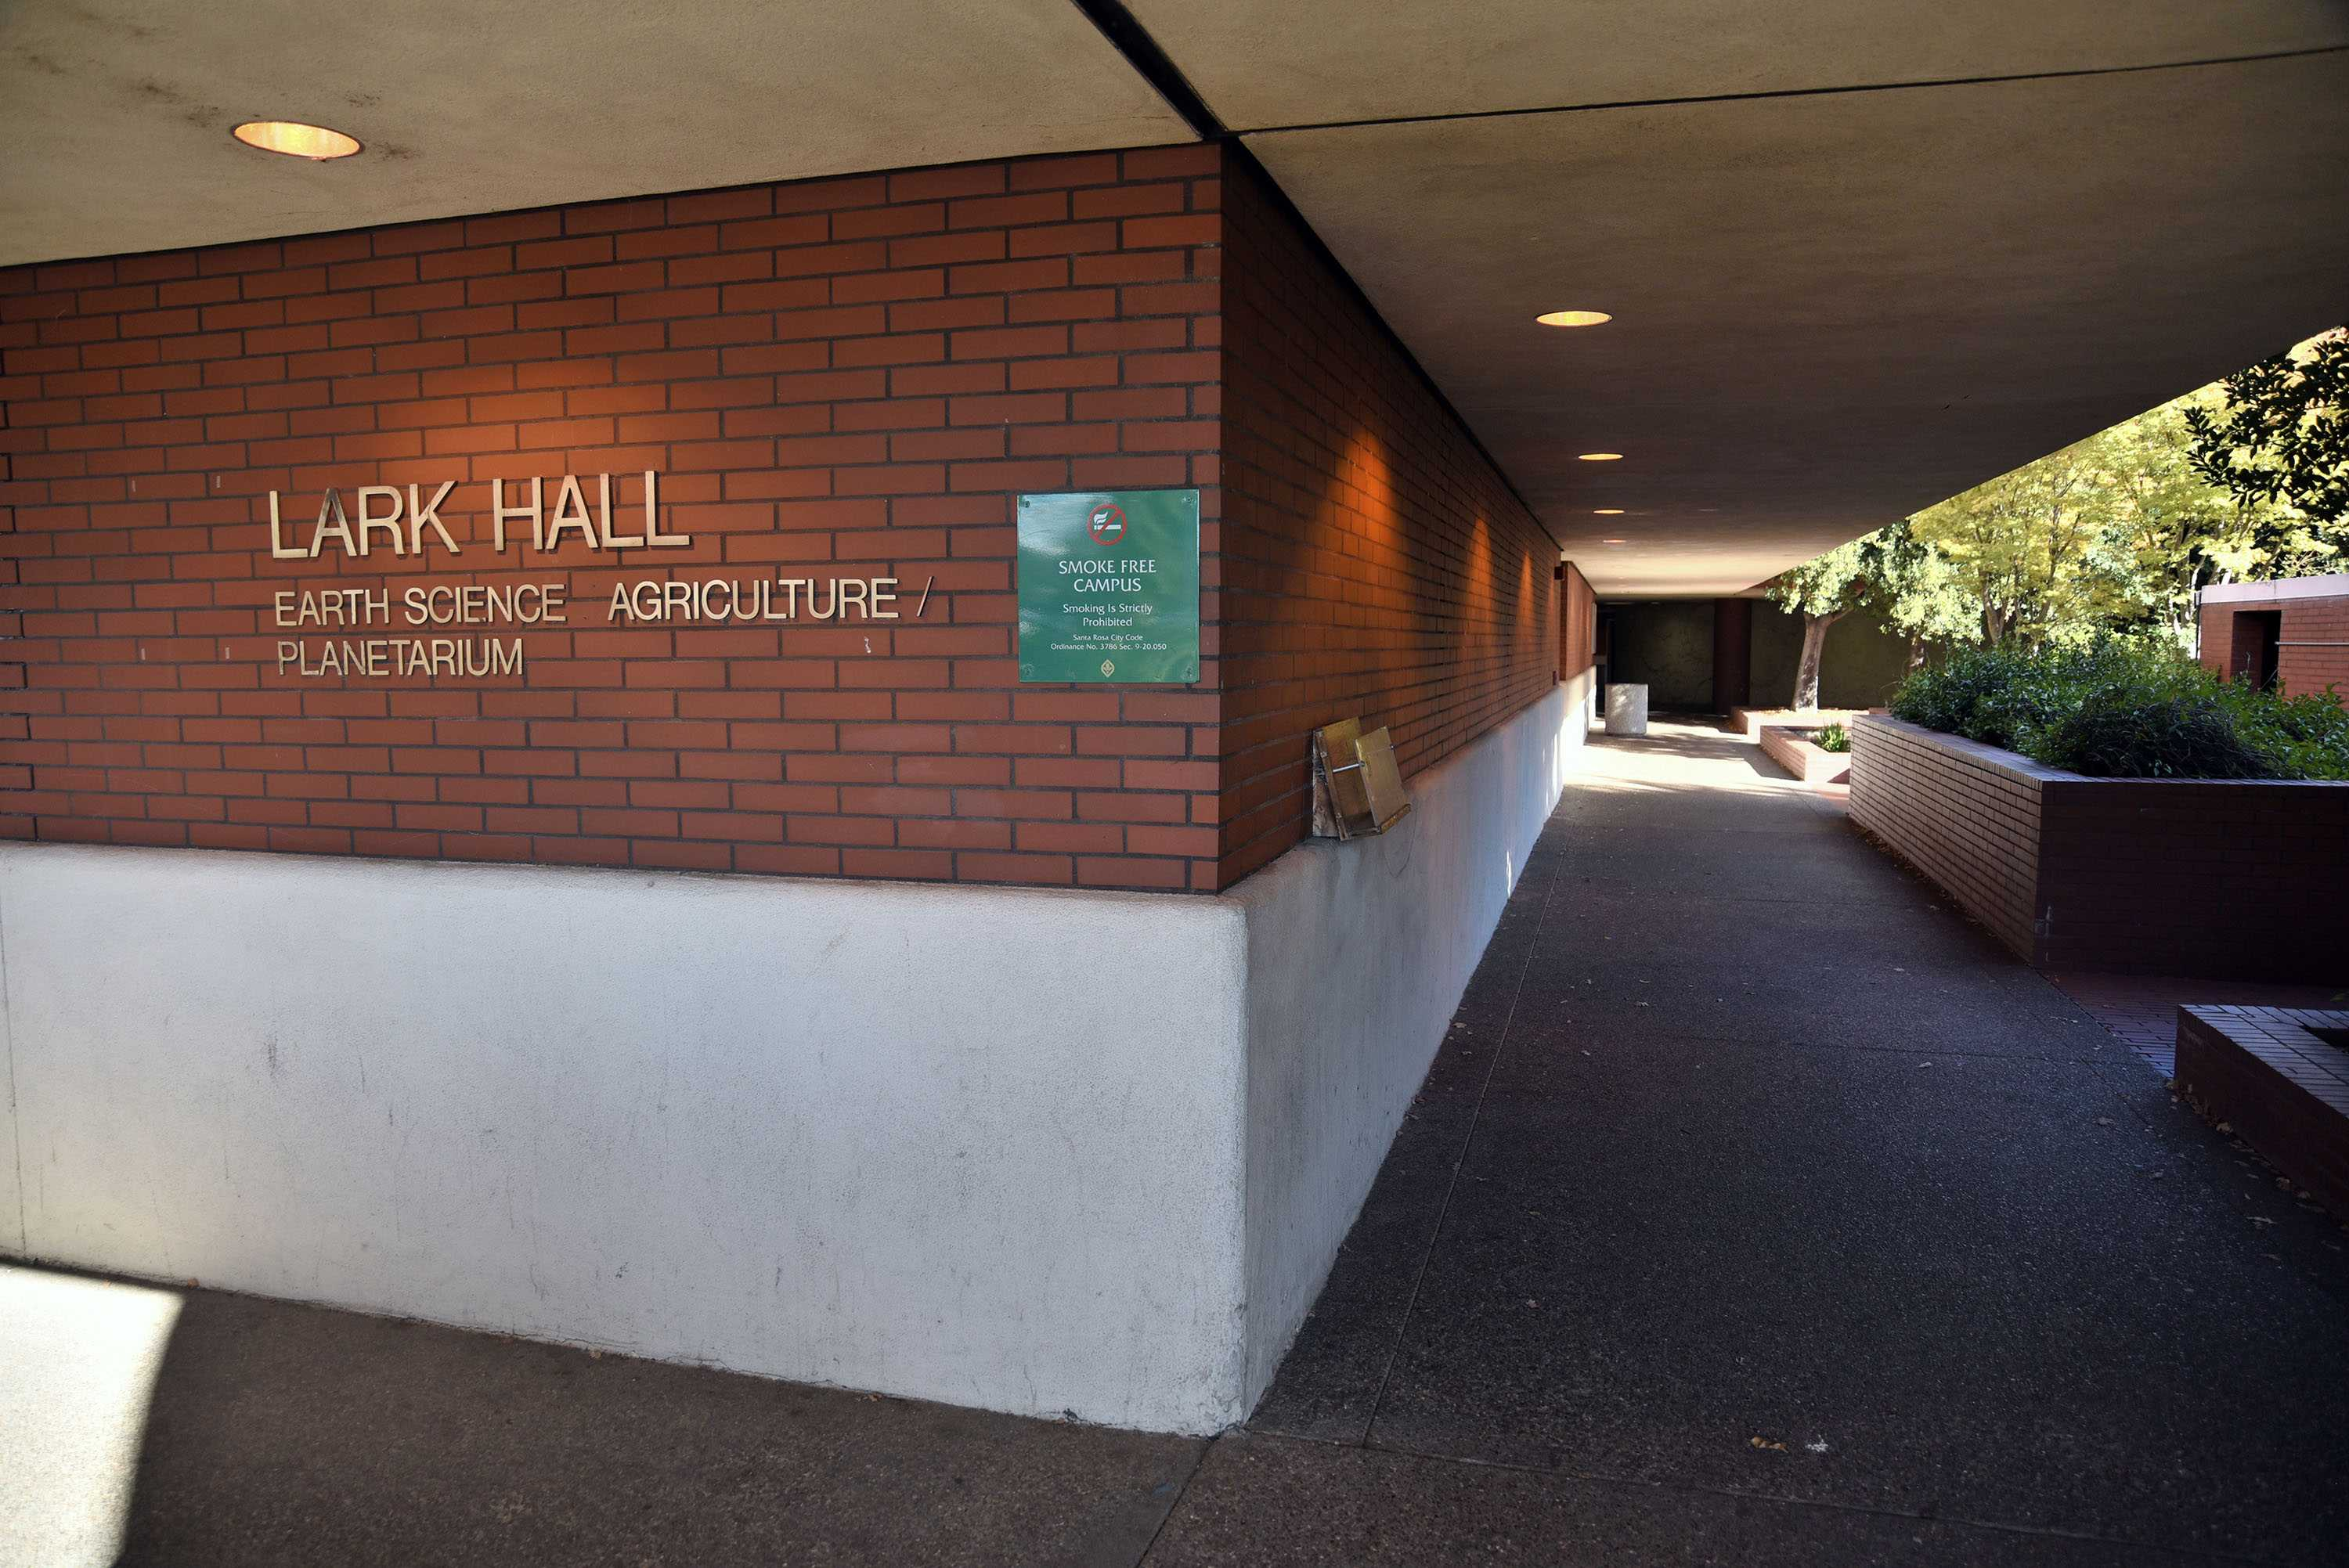 Lark Hall, the site where the suspect exposed his penis to a female student.